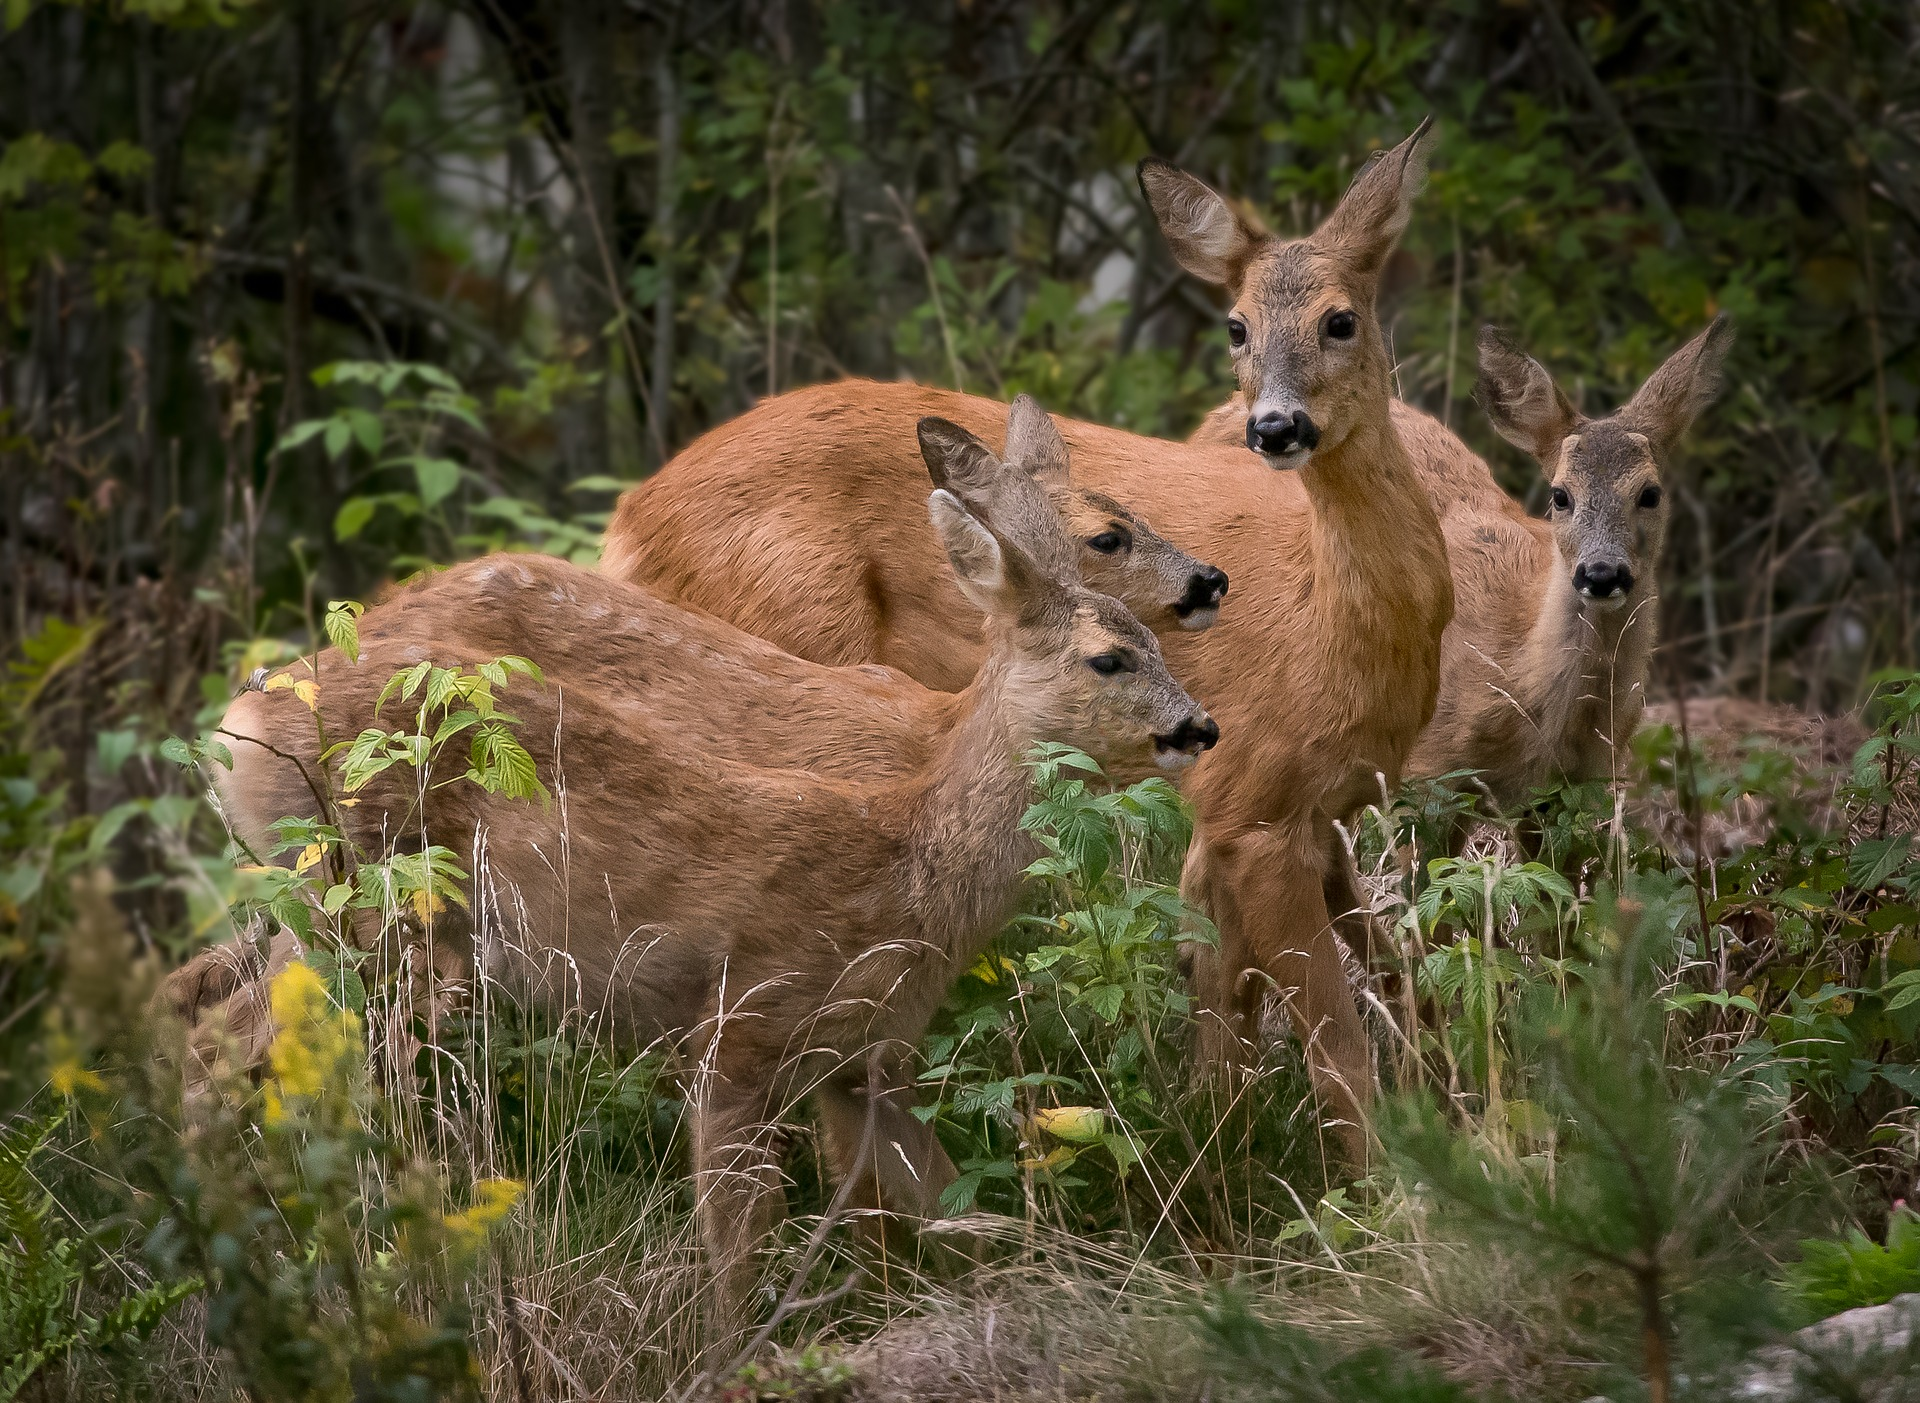 How To Stop Deer From Eating Plants: The Best Way To Keep Deer Out Of The  Garden! | Dealing With Deer